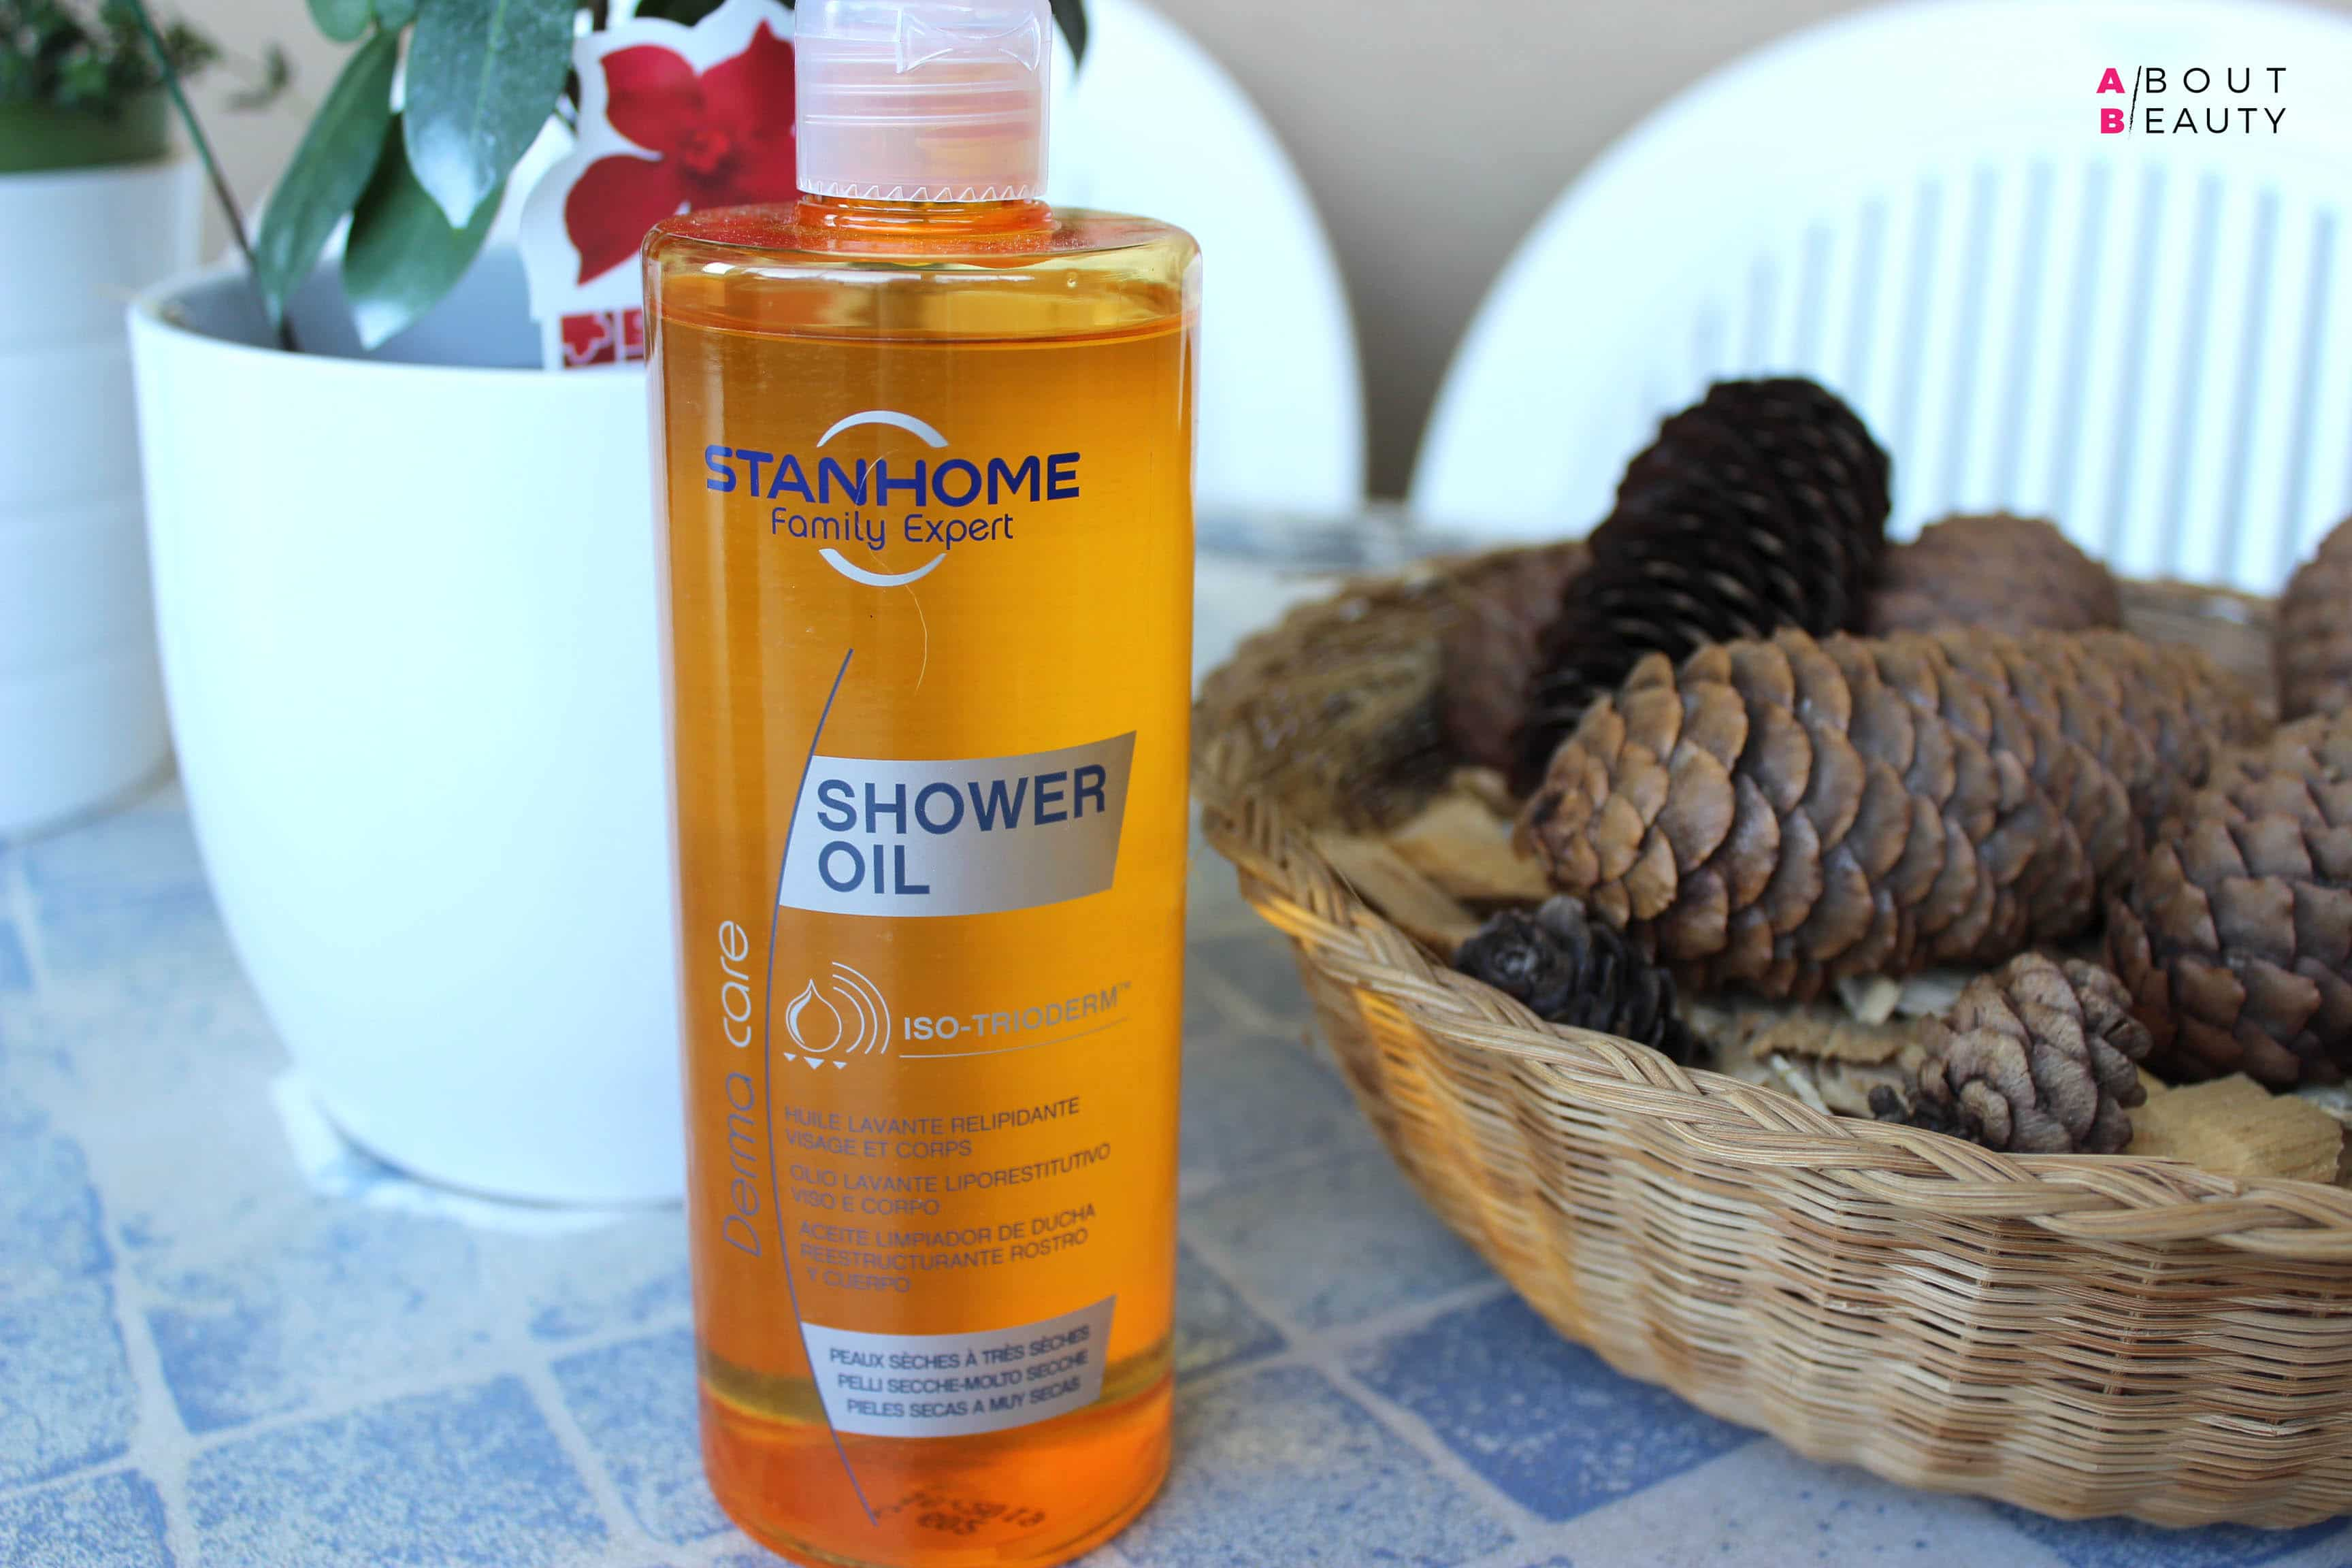 Stanhome Shower Oil